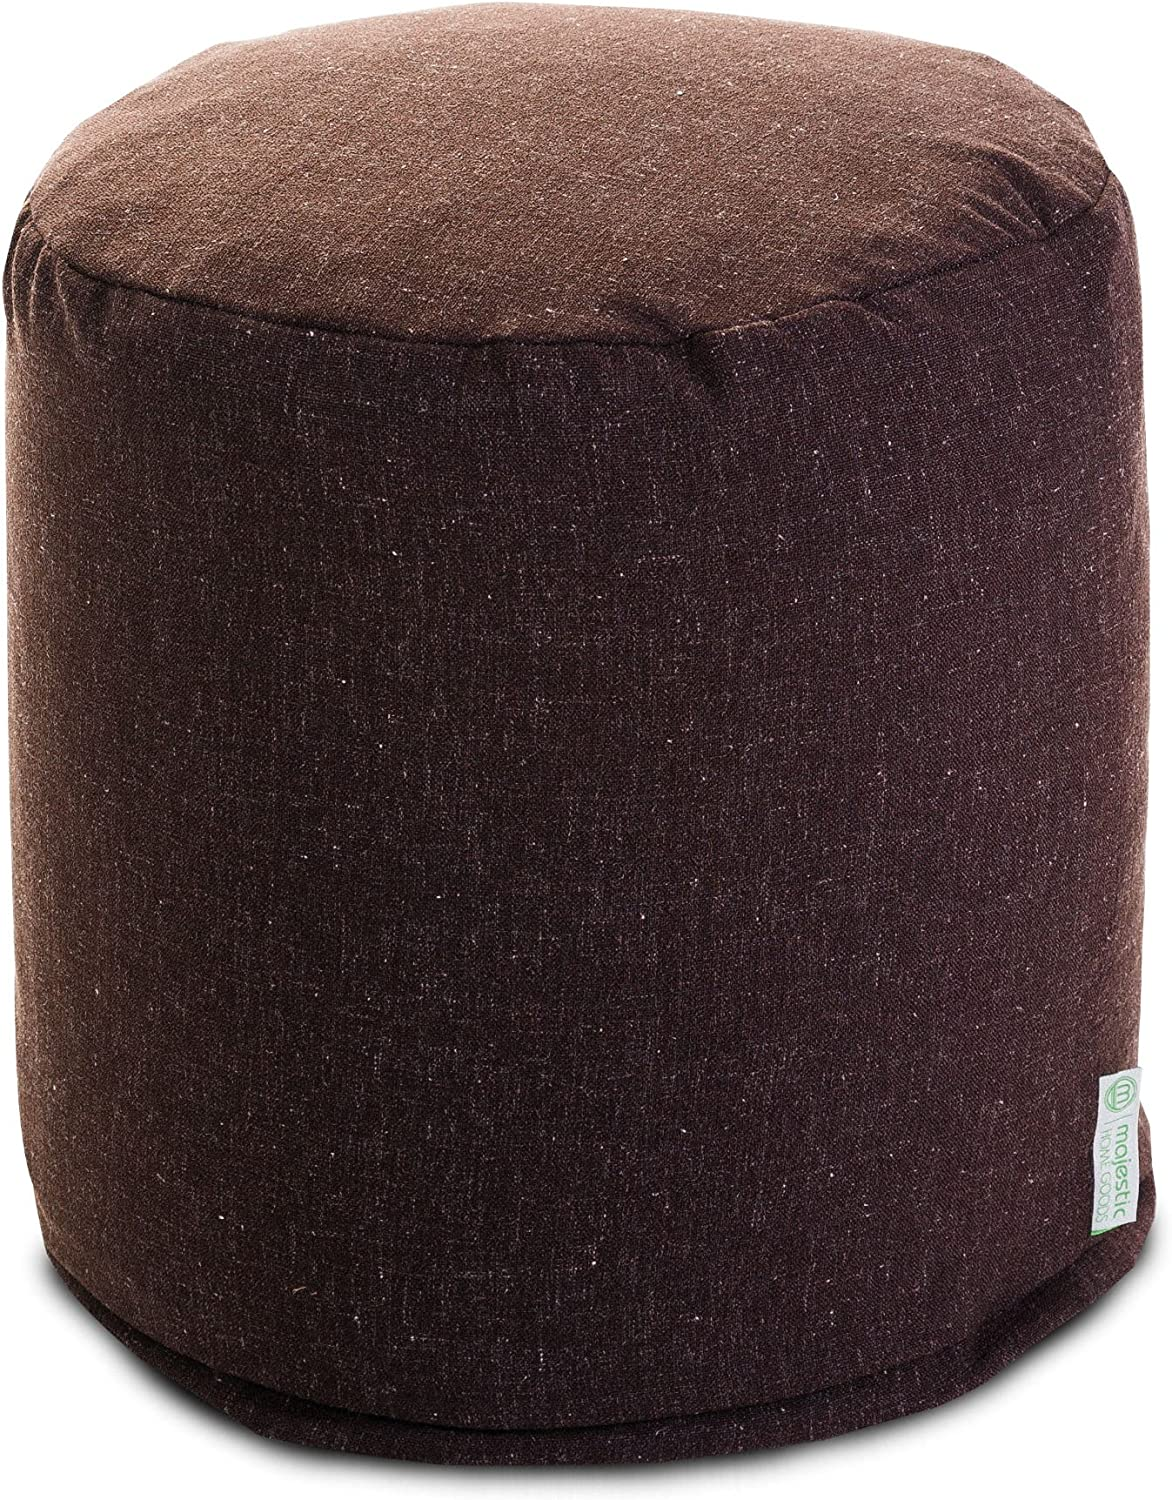 Majestic Home Goods Chocolate Wales Small Pouf